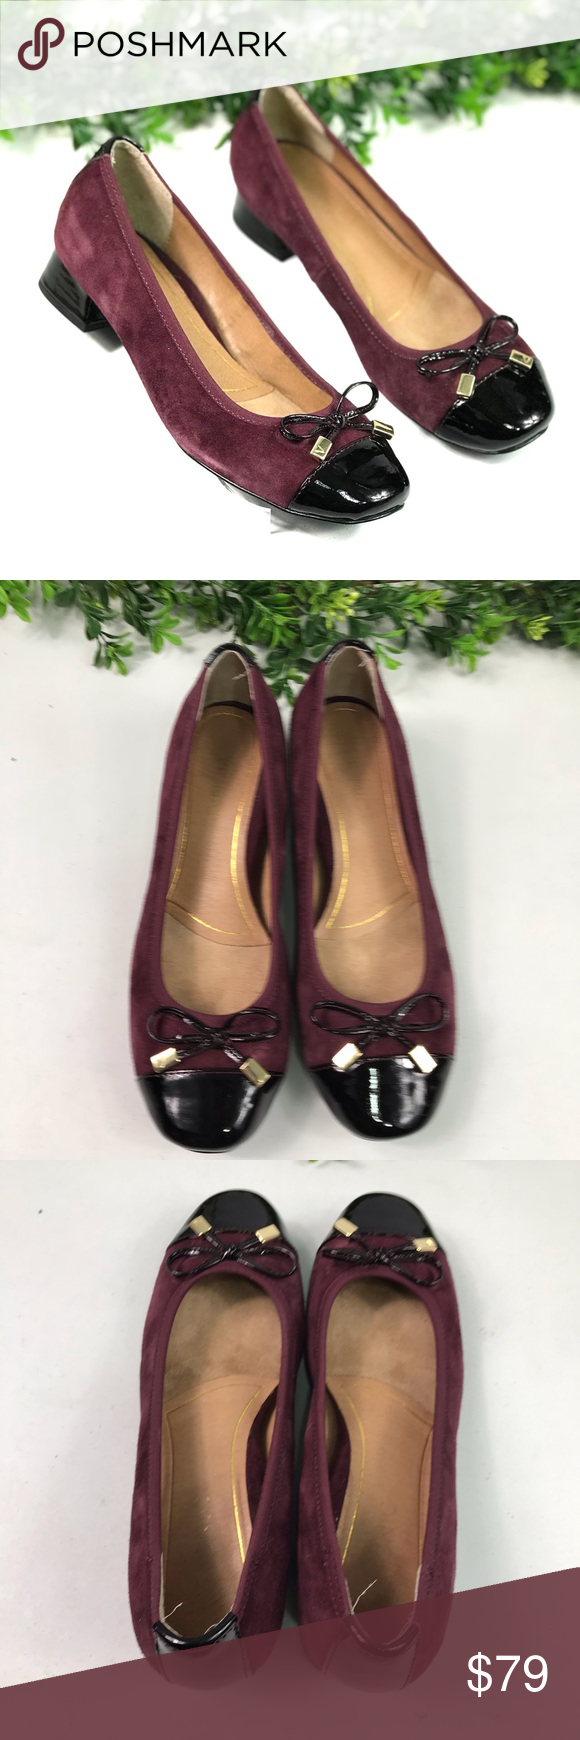 Vionic Maroon Suede Kitten Heel Bow Pumps Size 6m Vionic Women S Maroon Suede Kitten Heel Bow Pumps Size 6m Eu 37 E Trendy Heels Bow Pumps Heel Sandals Outfit